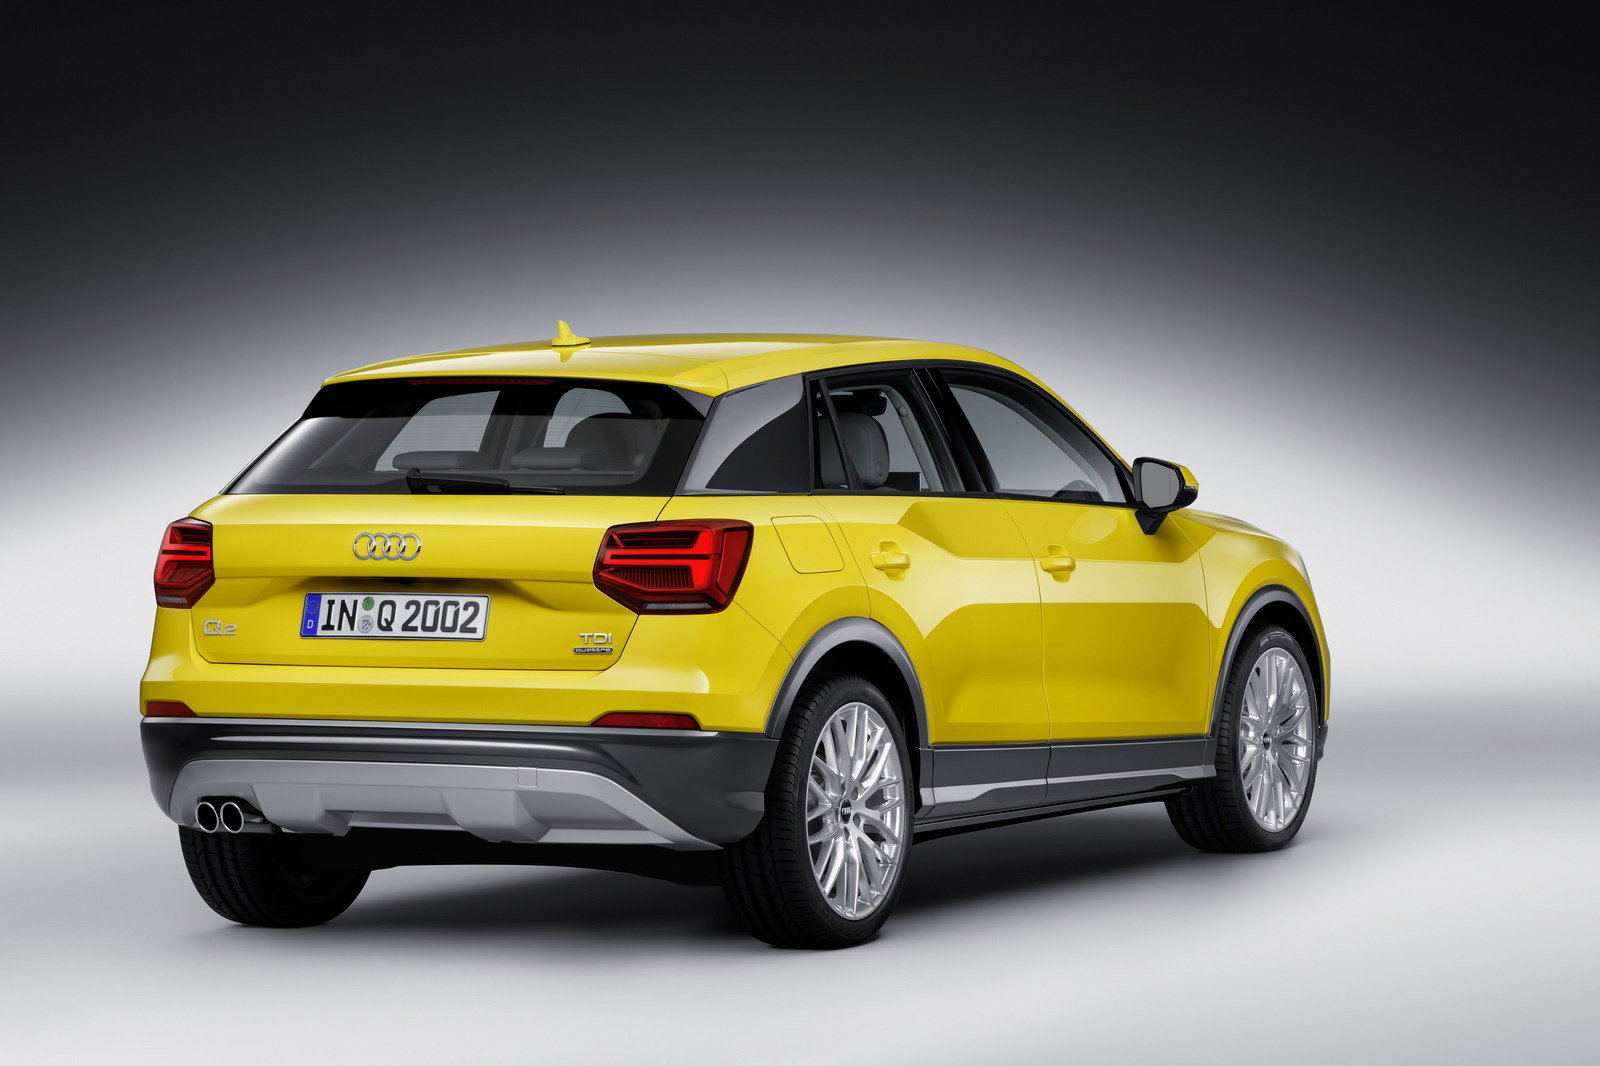 2017 audi q2 picture 667680 car review top speed. Black Bedroom Furniture Sets. Home Design Ideas